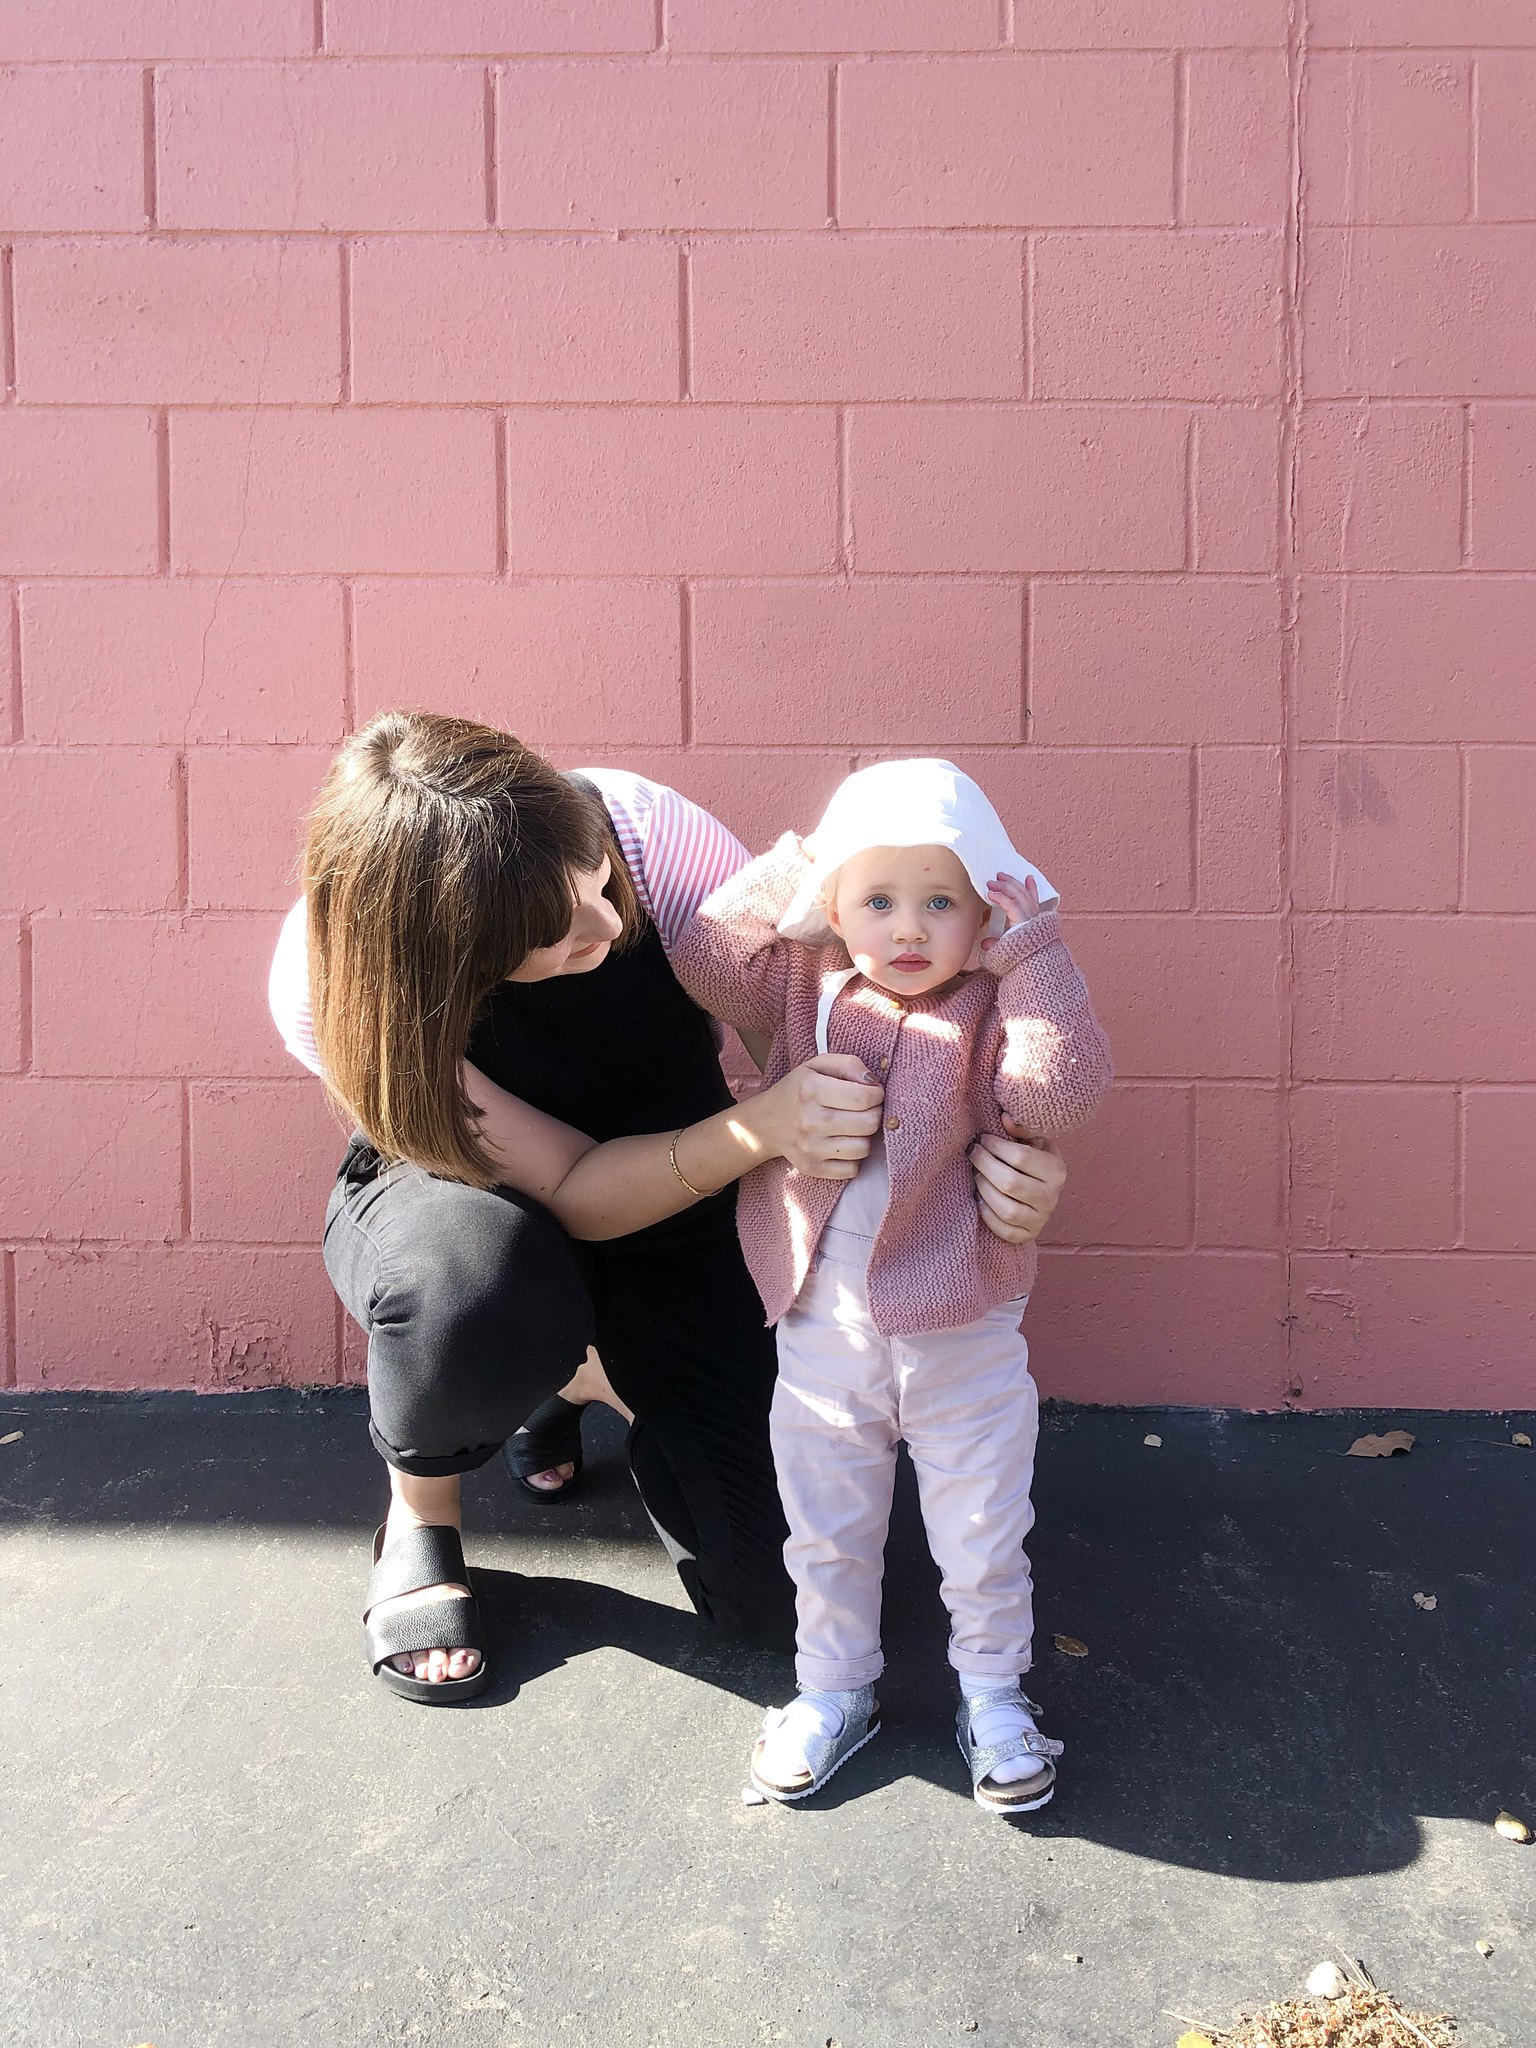 Toddler girl, toddler girl fashion, Maternity fashion, Pregnancy style, maternity dungarees, Mom blog, Pregnancy blog, Mommy blogger, mom life, Candid motherhood, Girl mom, Fashion blogger, Bay Area blogger